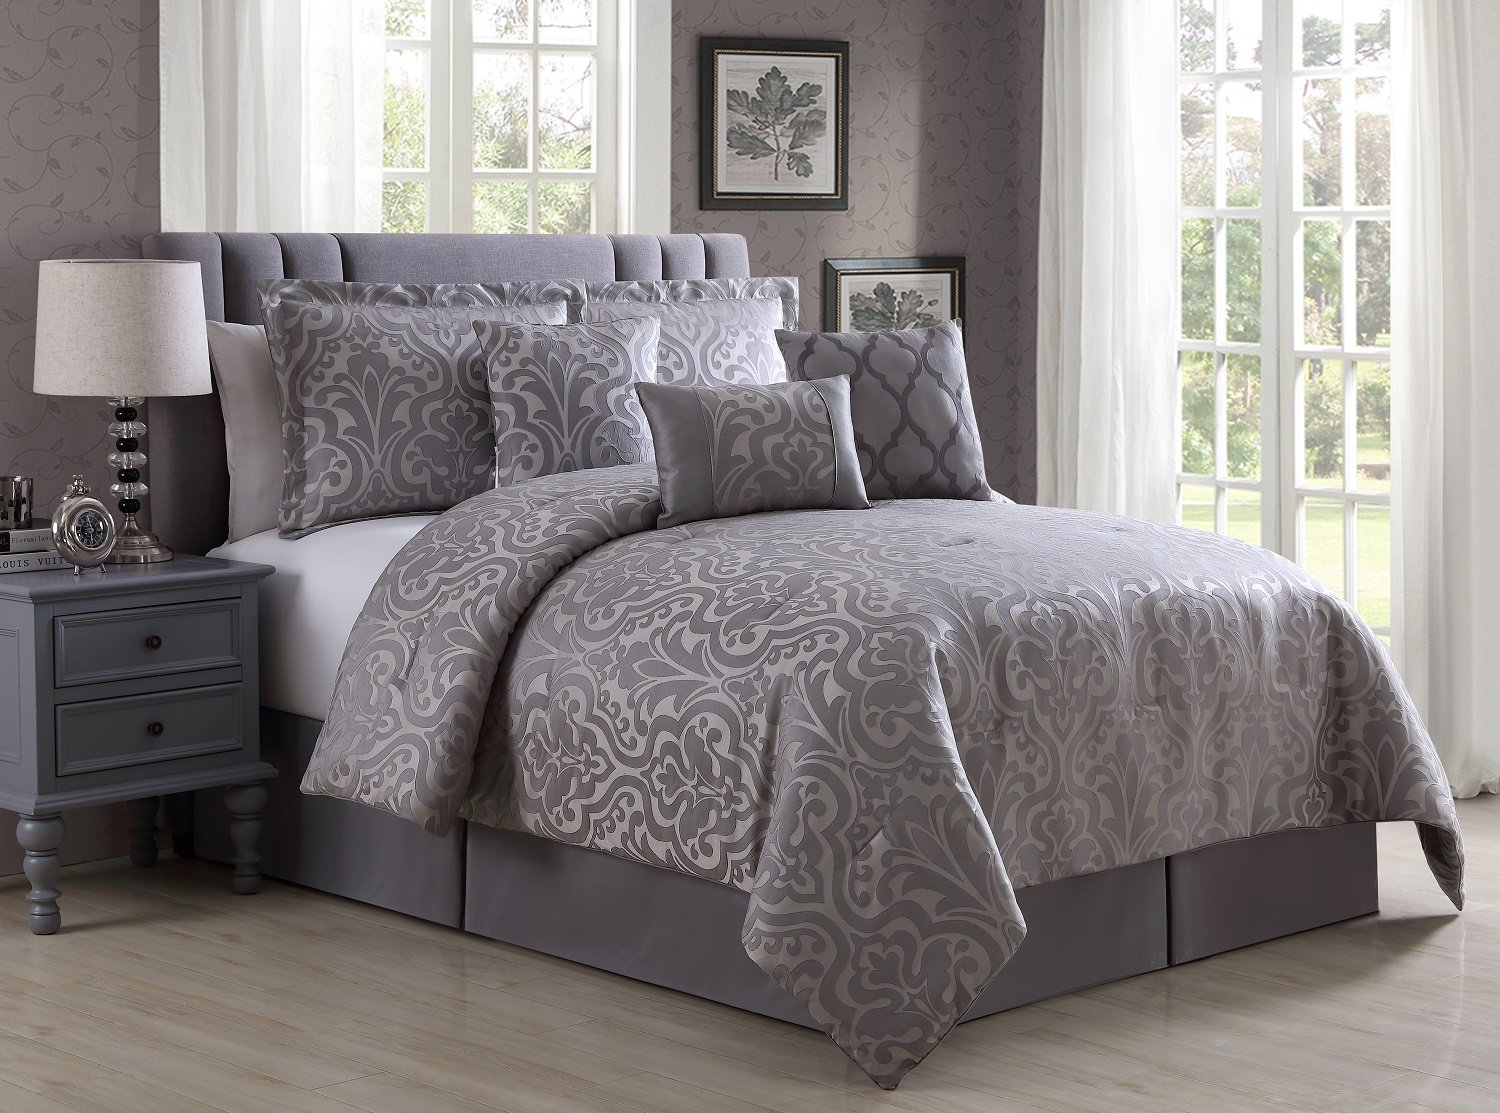 Madison by Chezmoi Collection Luxury 7-piece Jacquard Silver Grey Floral Damask Bedding Comforter Set